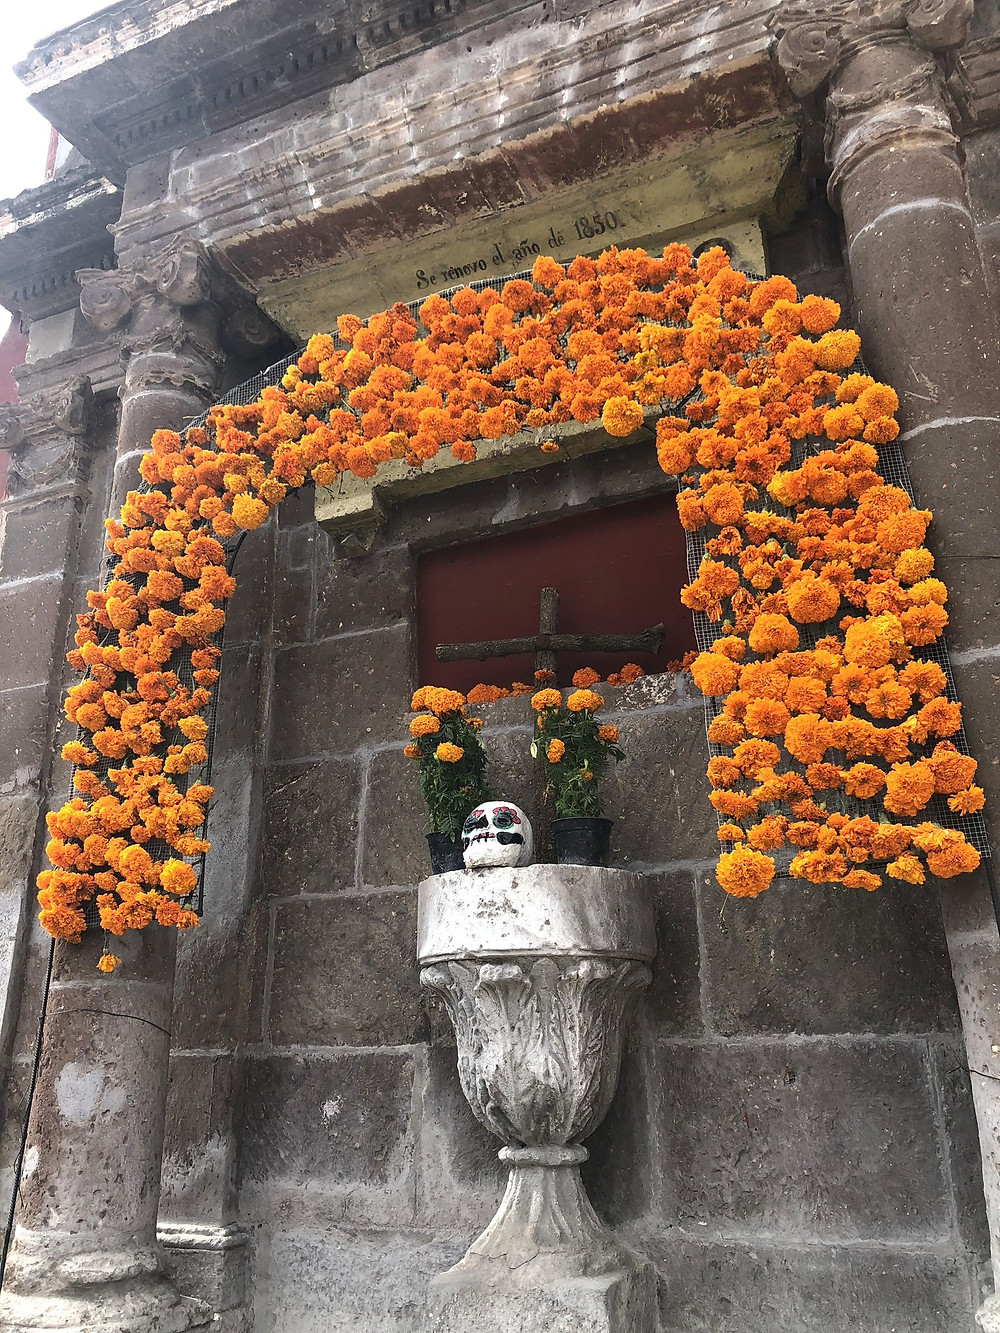 Aztec marigolds decorating an outrdoor alter for day of the dead in San Miguel